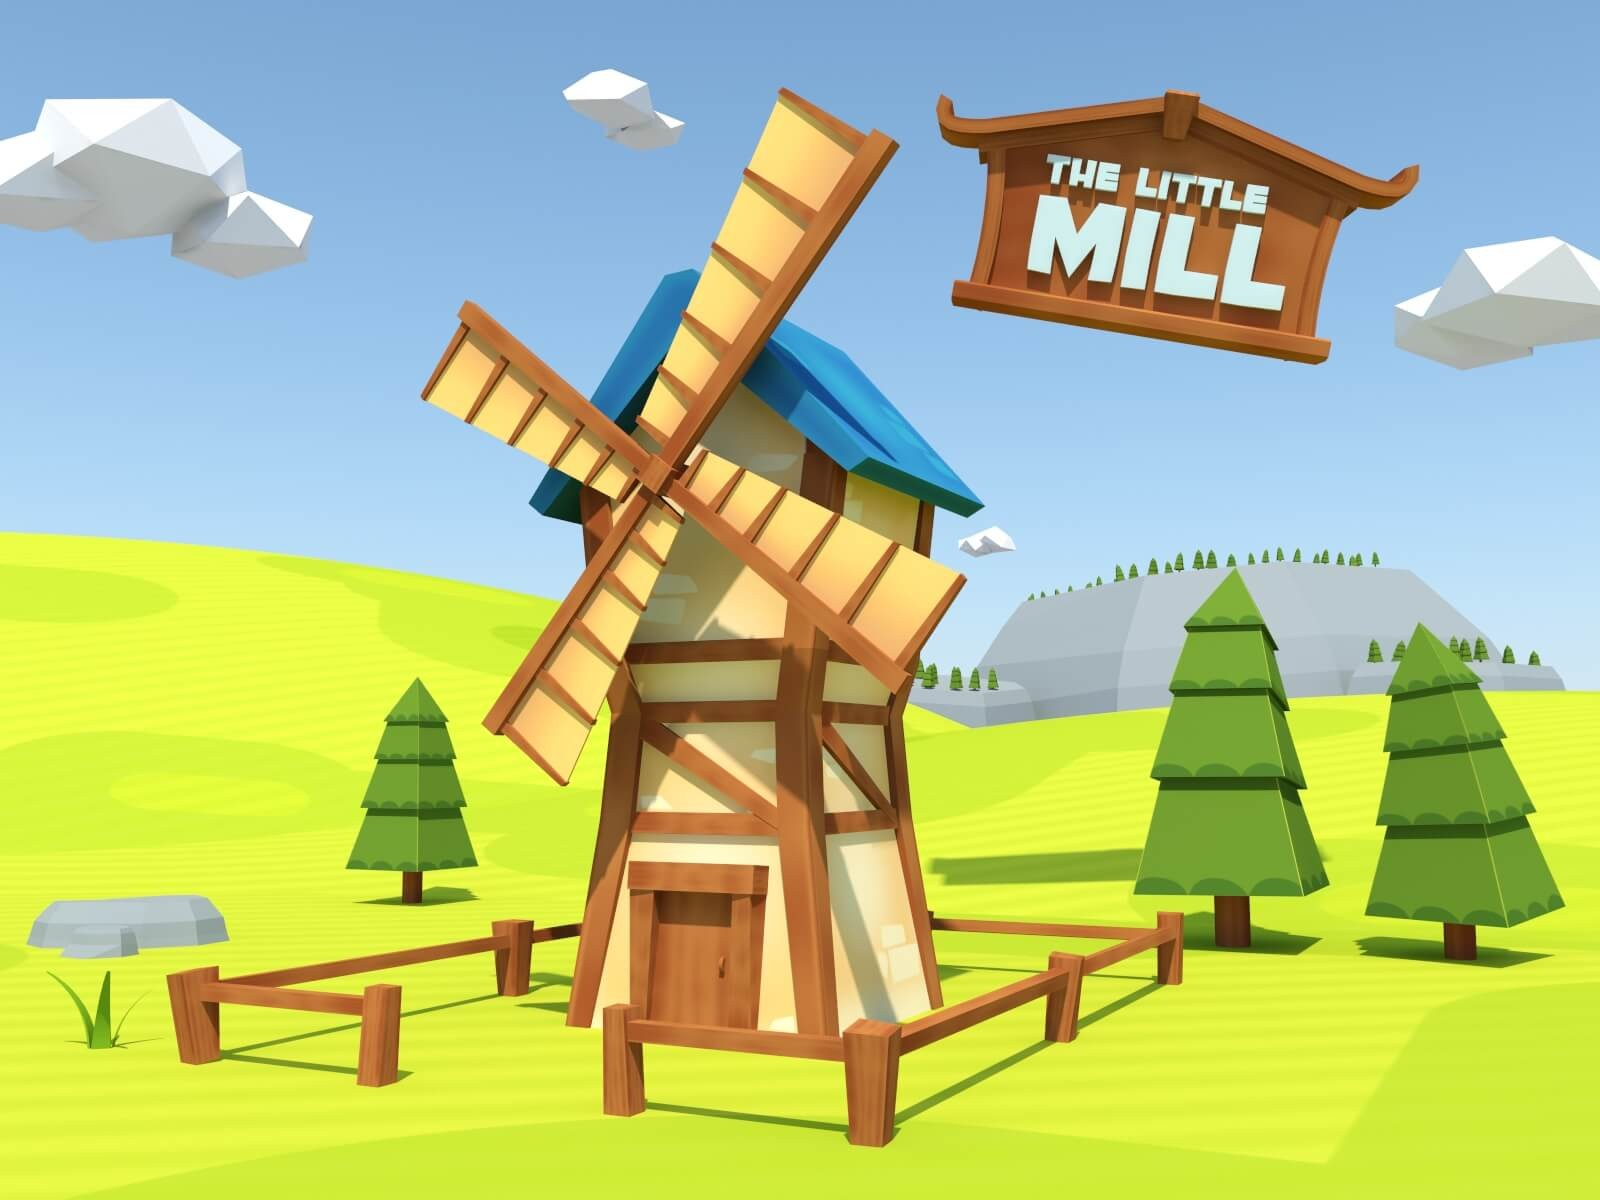 Moulin assets low poly